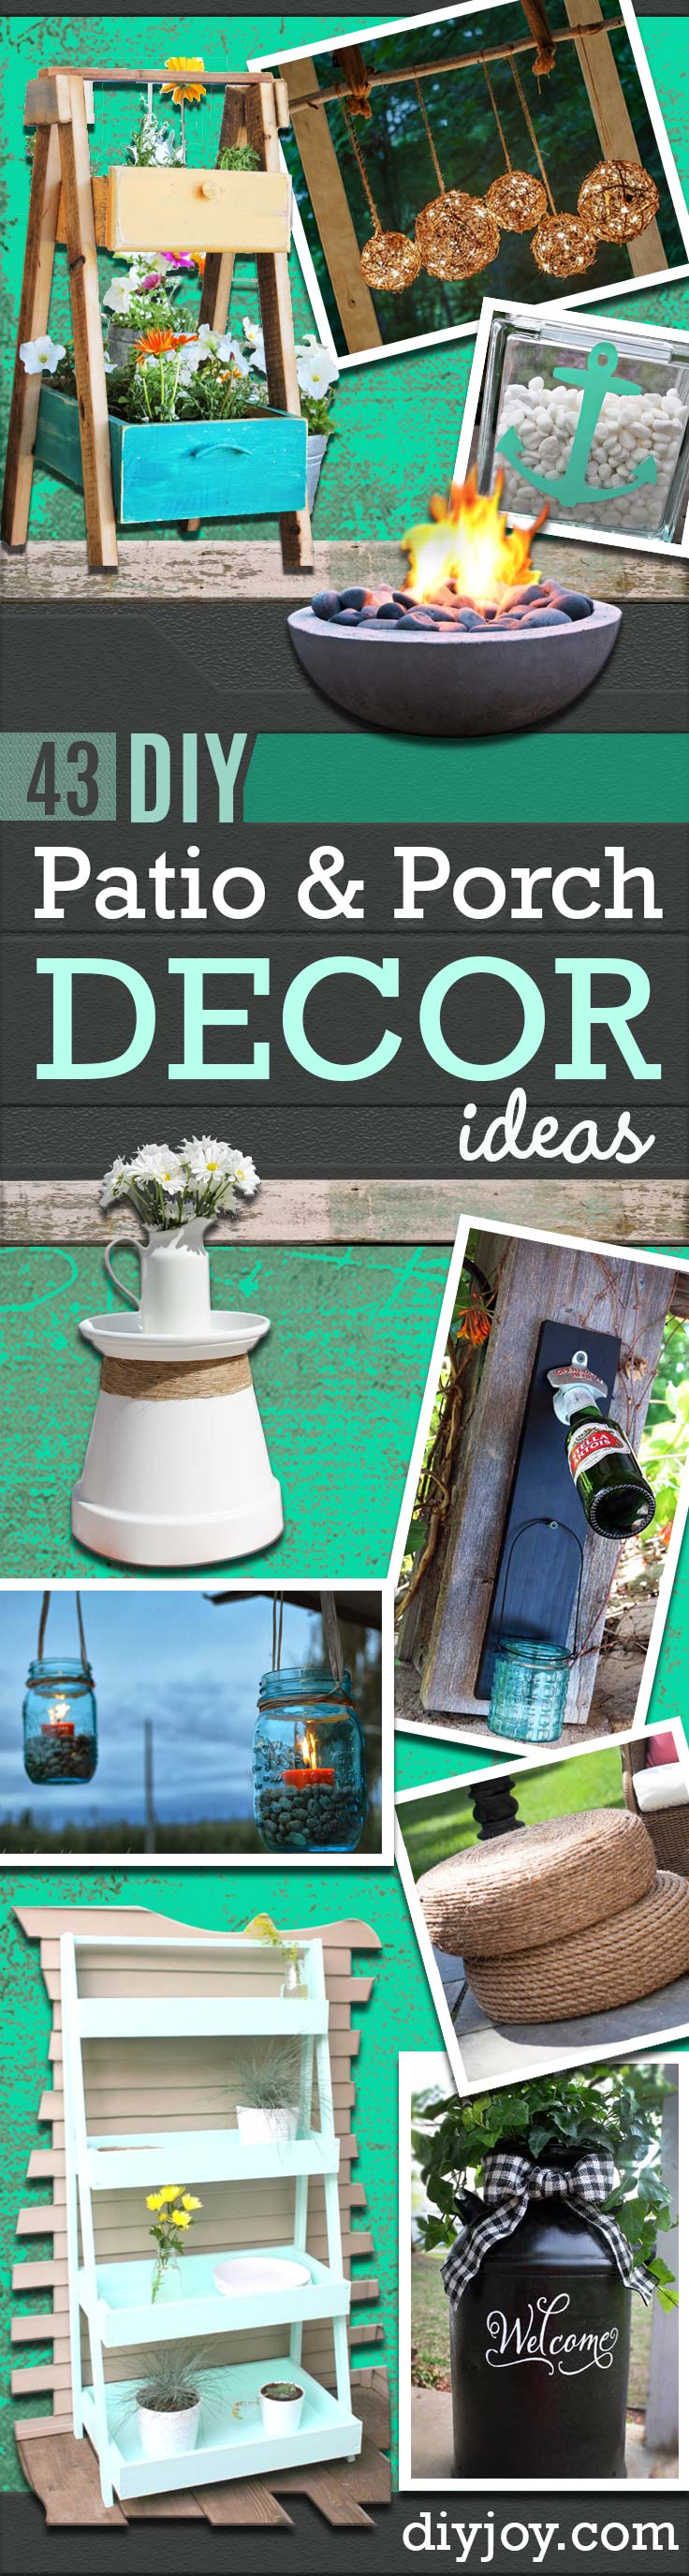 43 diy patio and porch decor ideas diy porch and patio ideas decor projects and furniture tutorials you can build for the solutioingenieria Images